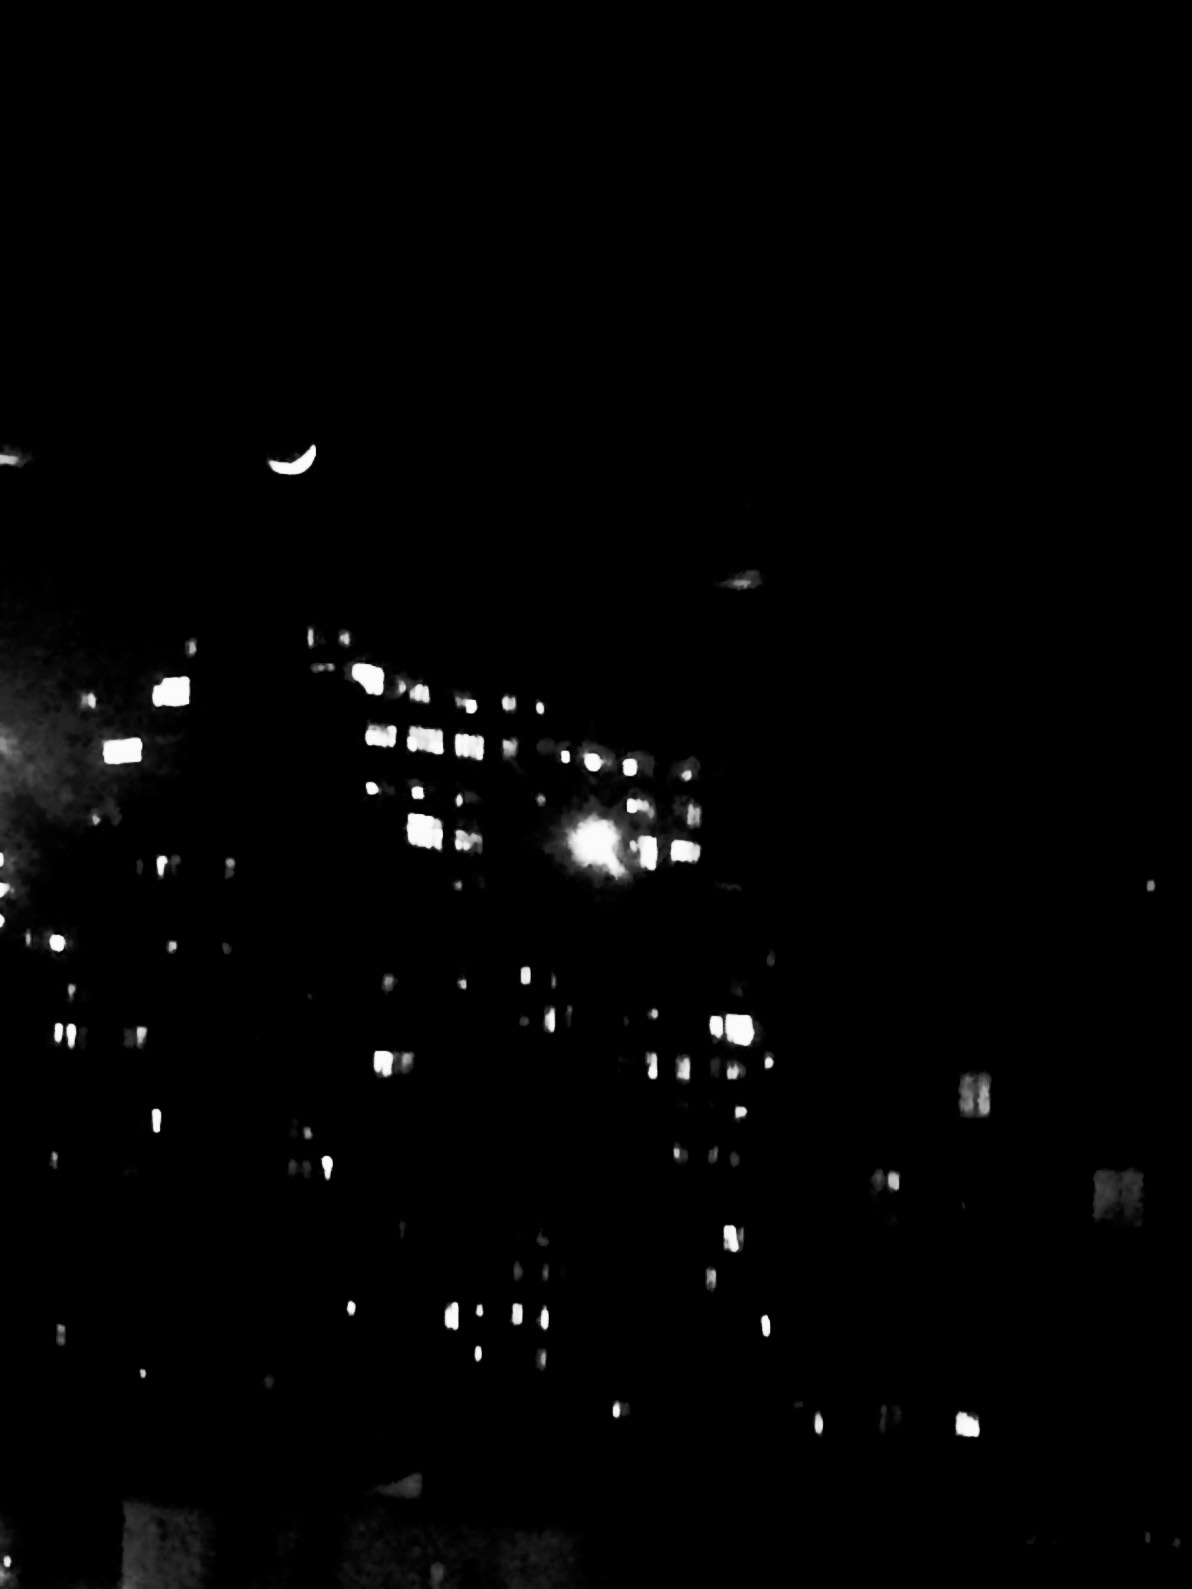 Looking out the window at TCAT-NYC...at the crescent moon...